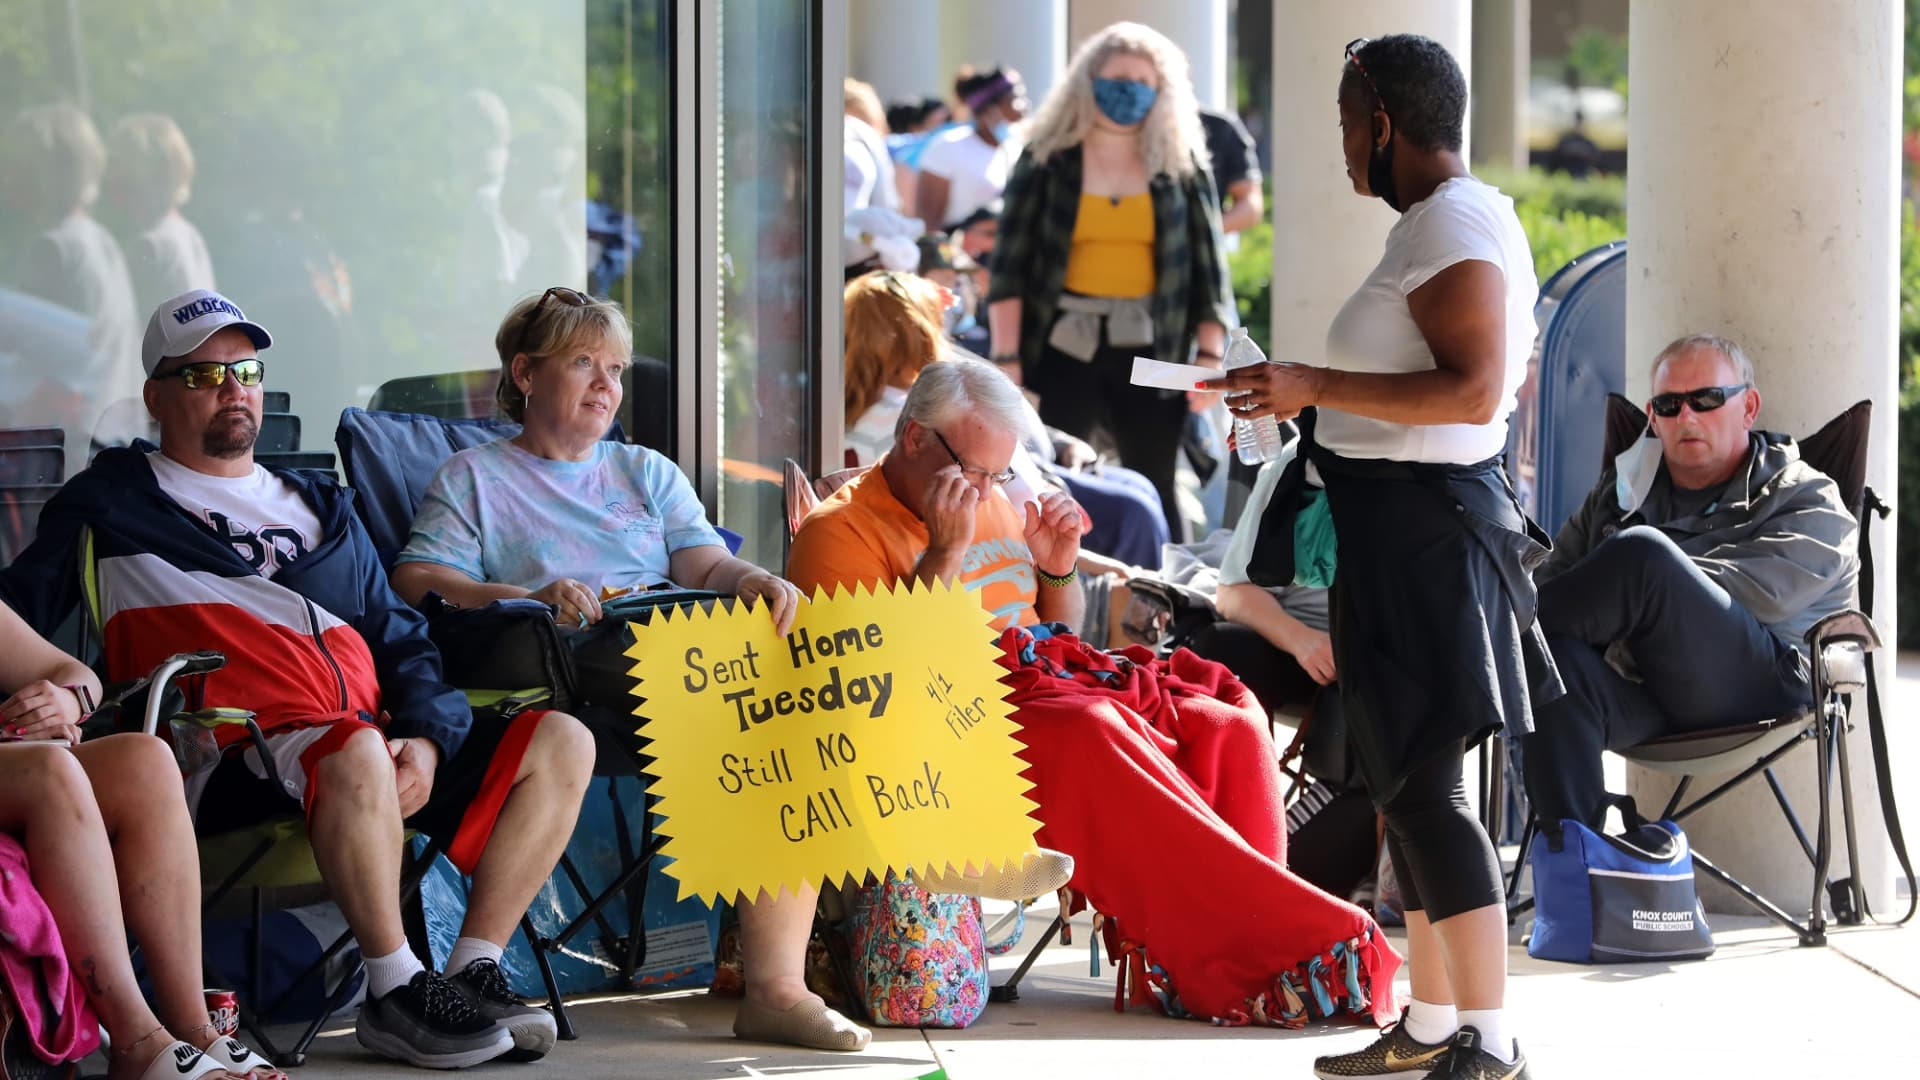 Hundreds of unemployed Kentucky residents wait in long lines outside the Kentucky Career Center for help with their unemployment claims on June 19, 2020 in Frankfort, Kentucky.